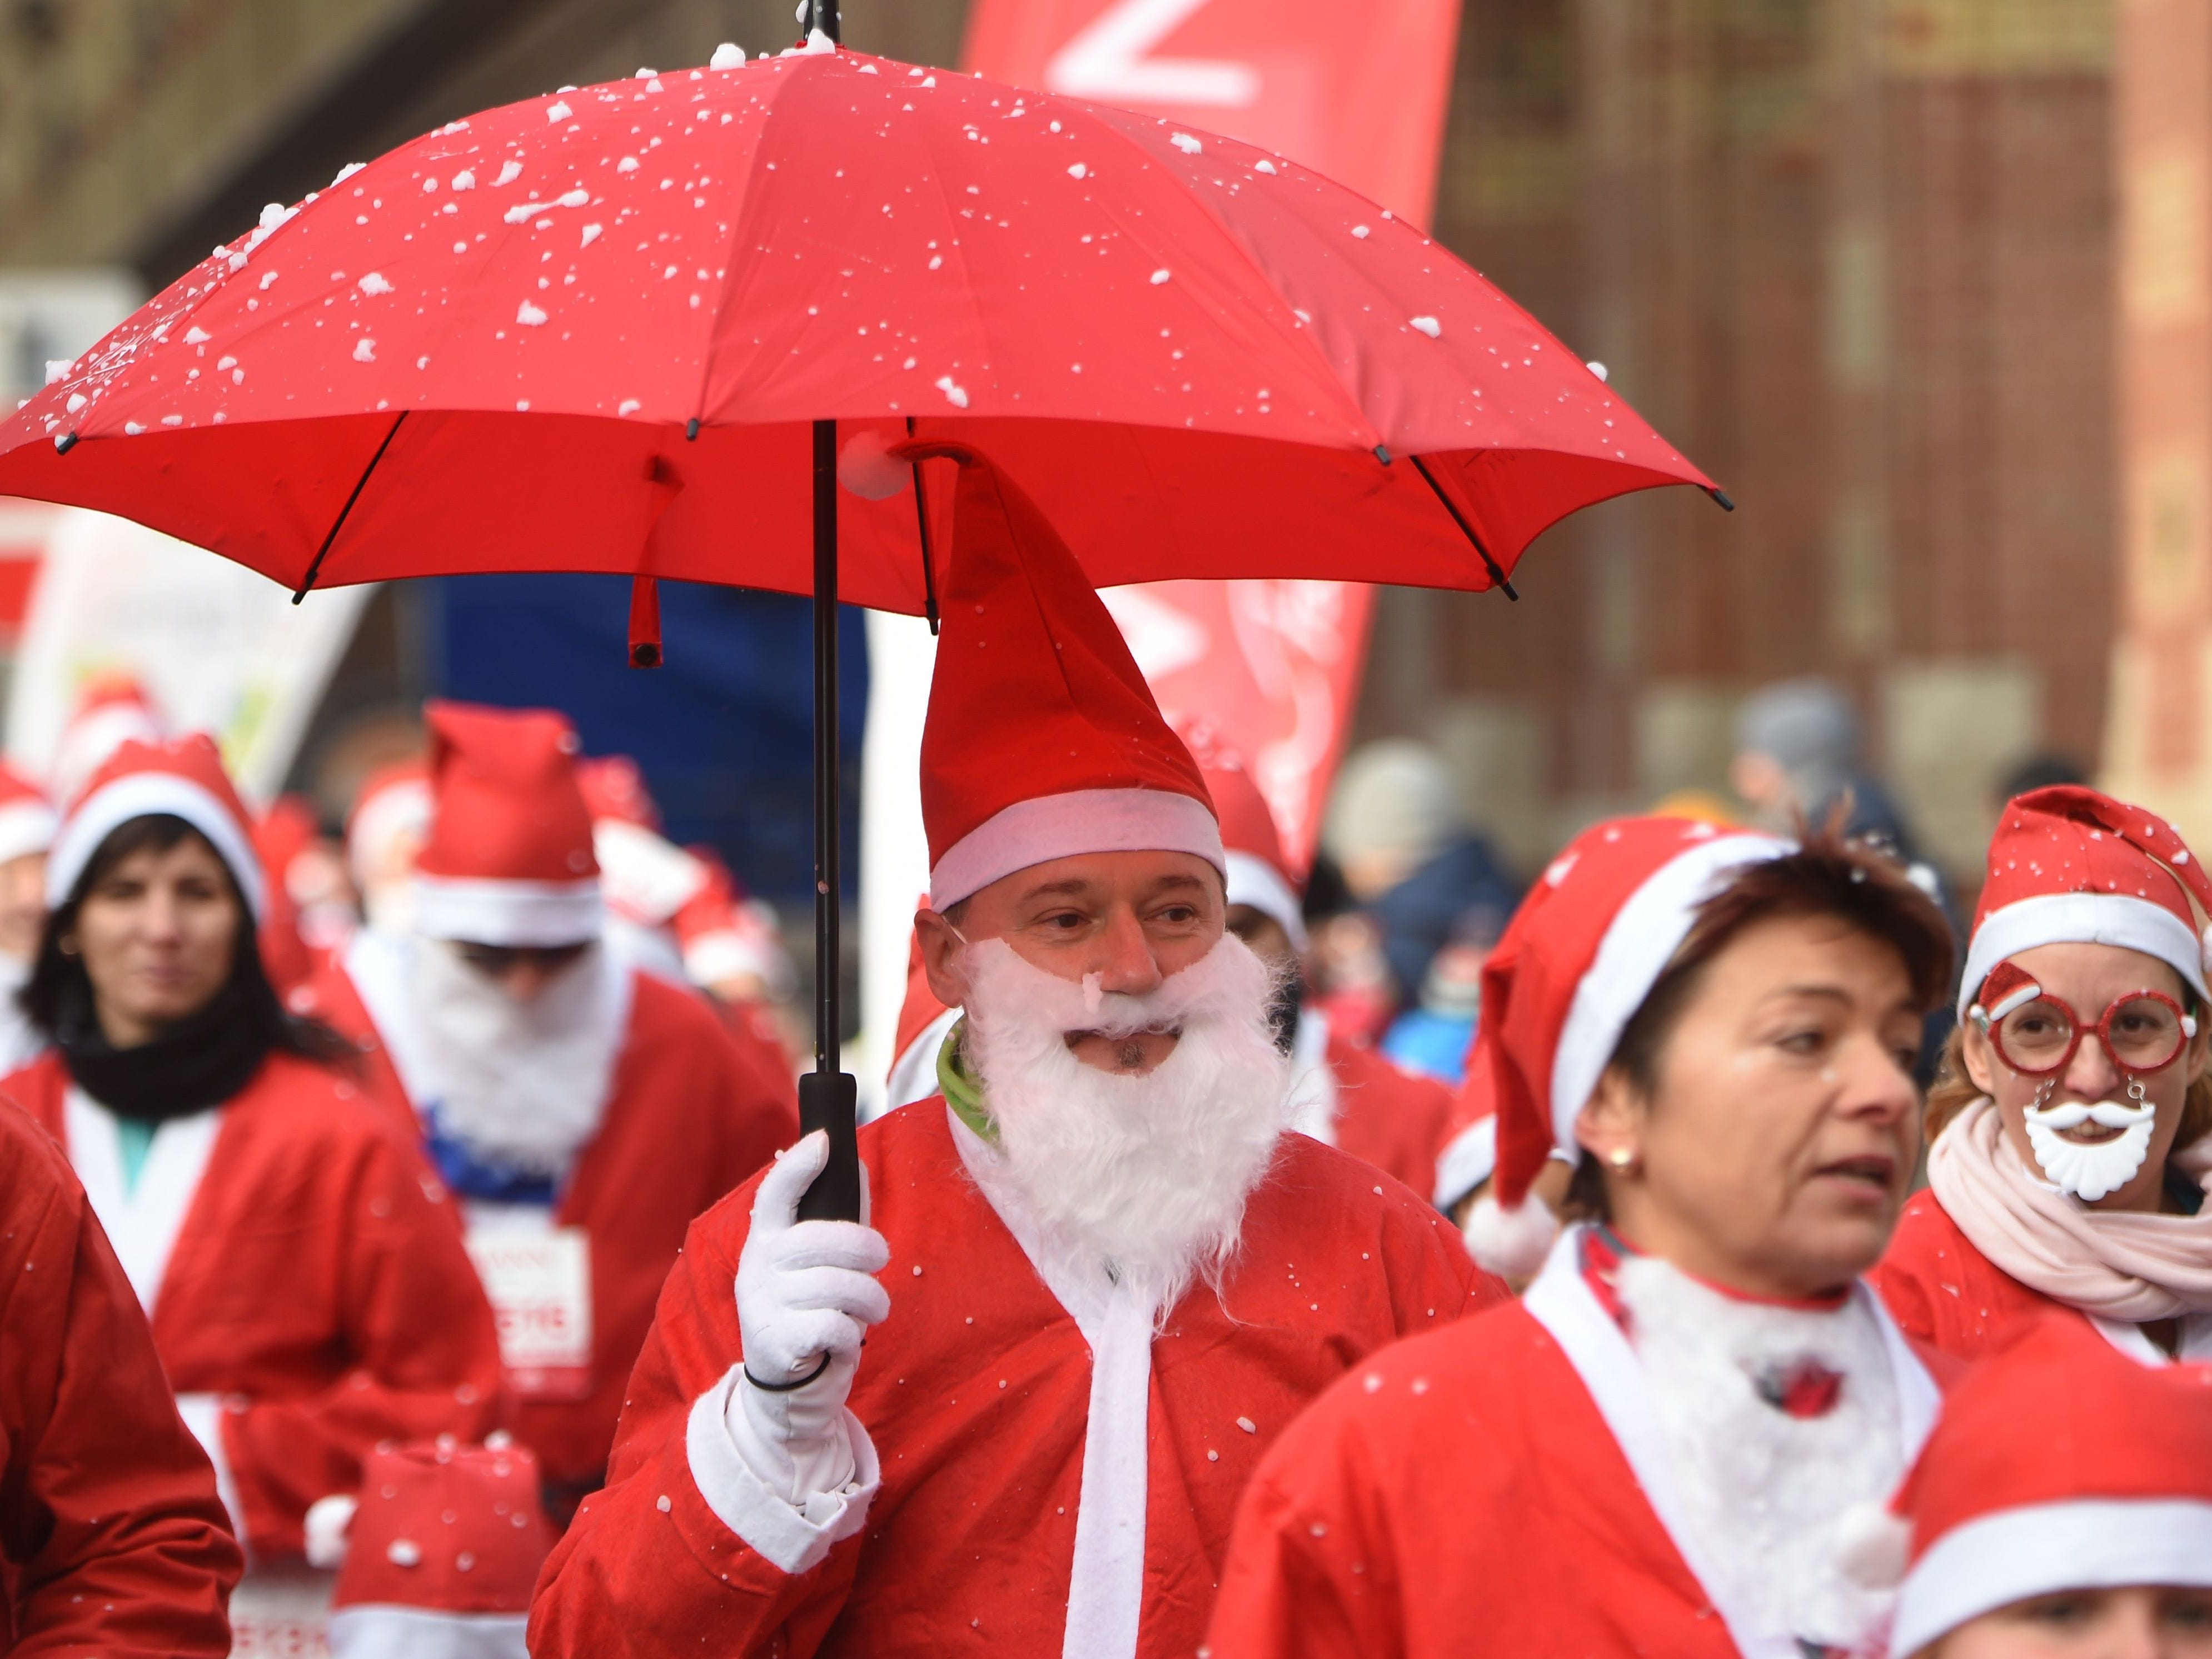 Participants dressed as Santa Claus take part in a charity run for poor children on Dec. 2, 2018 in Budapest, Hungary.